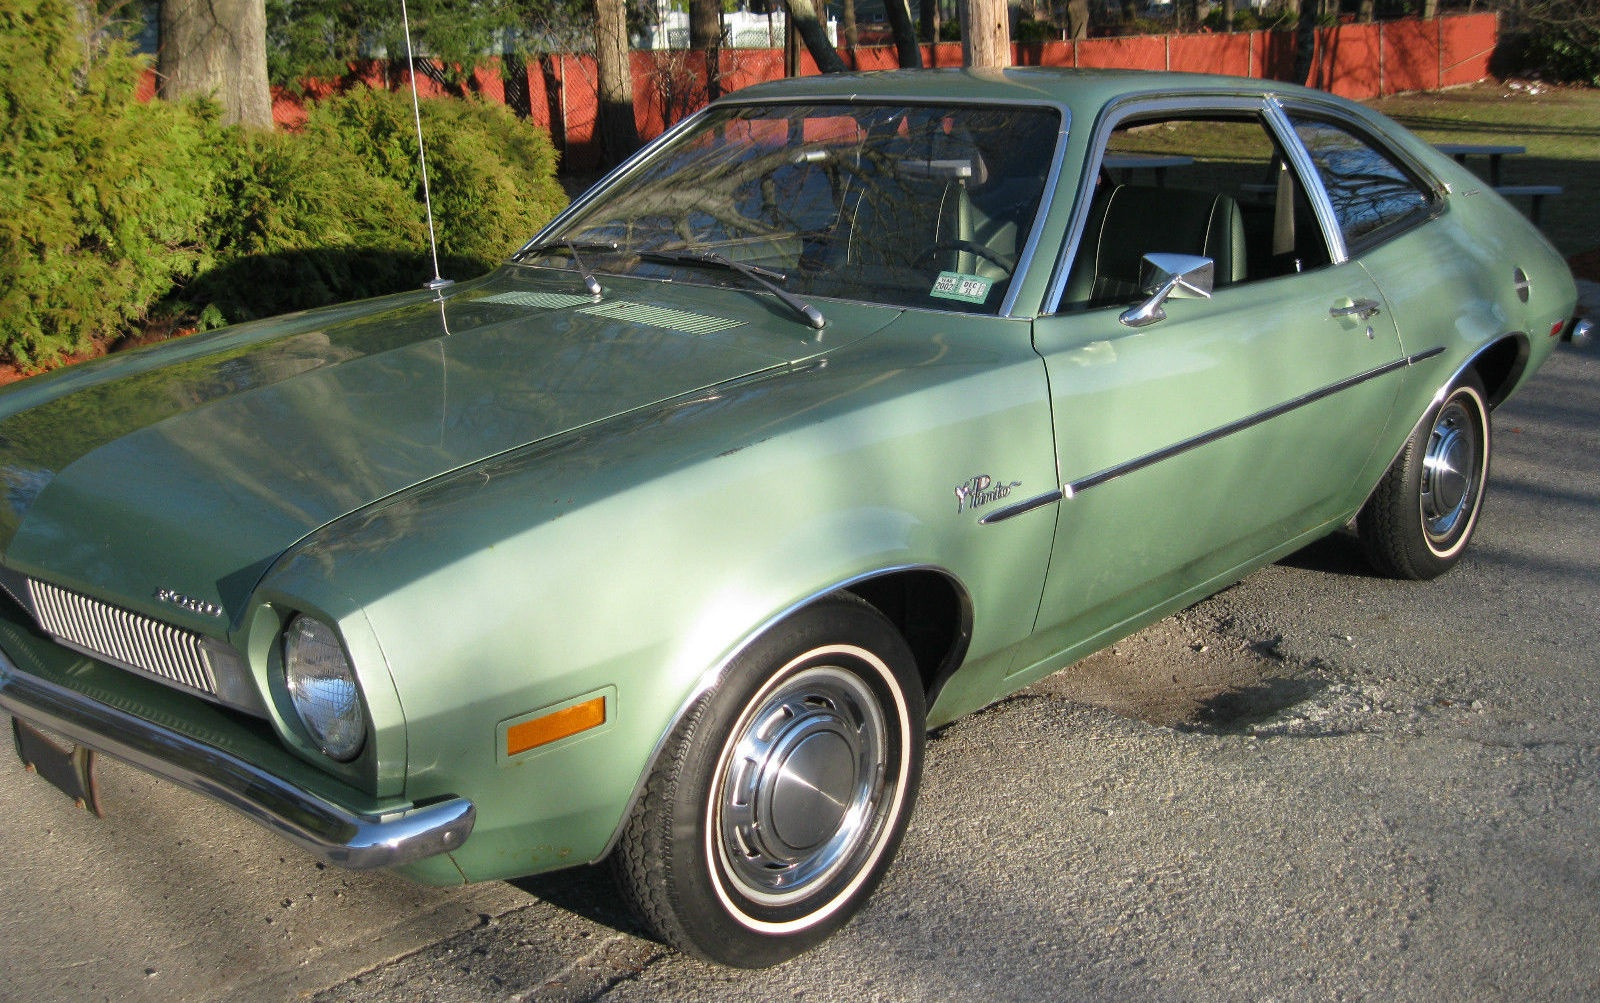 Picture Of A Ford Pinto Car